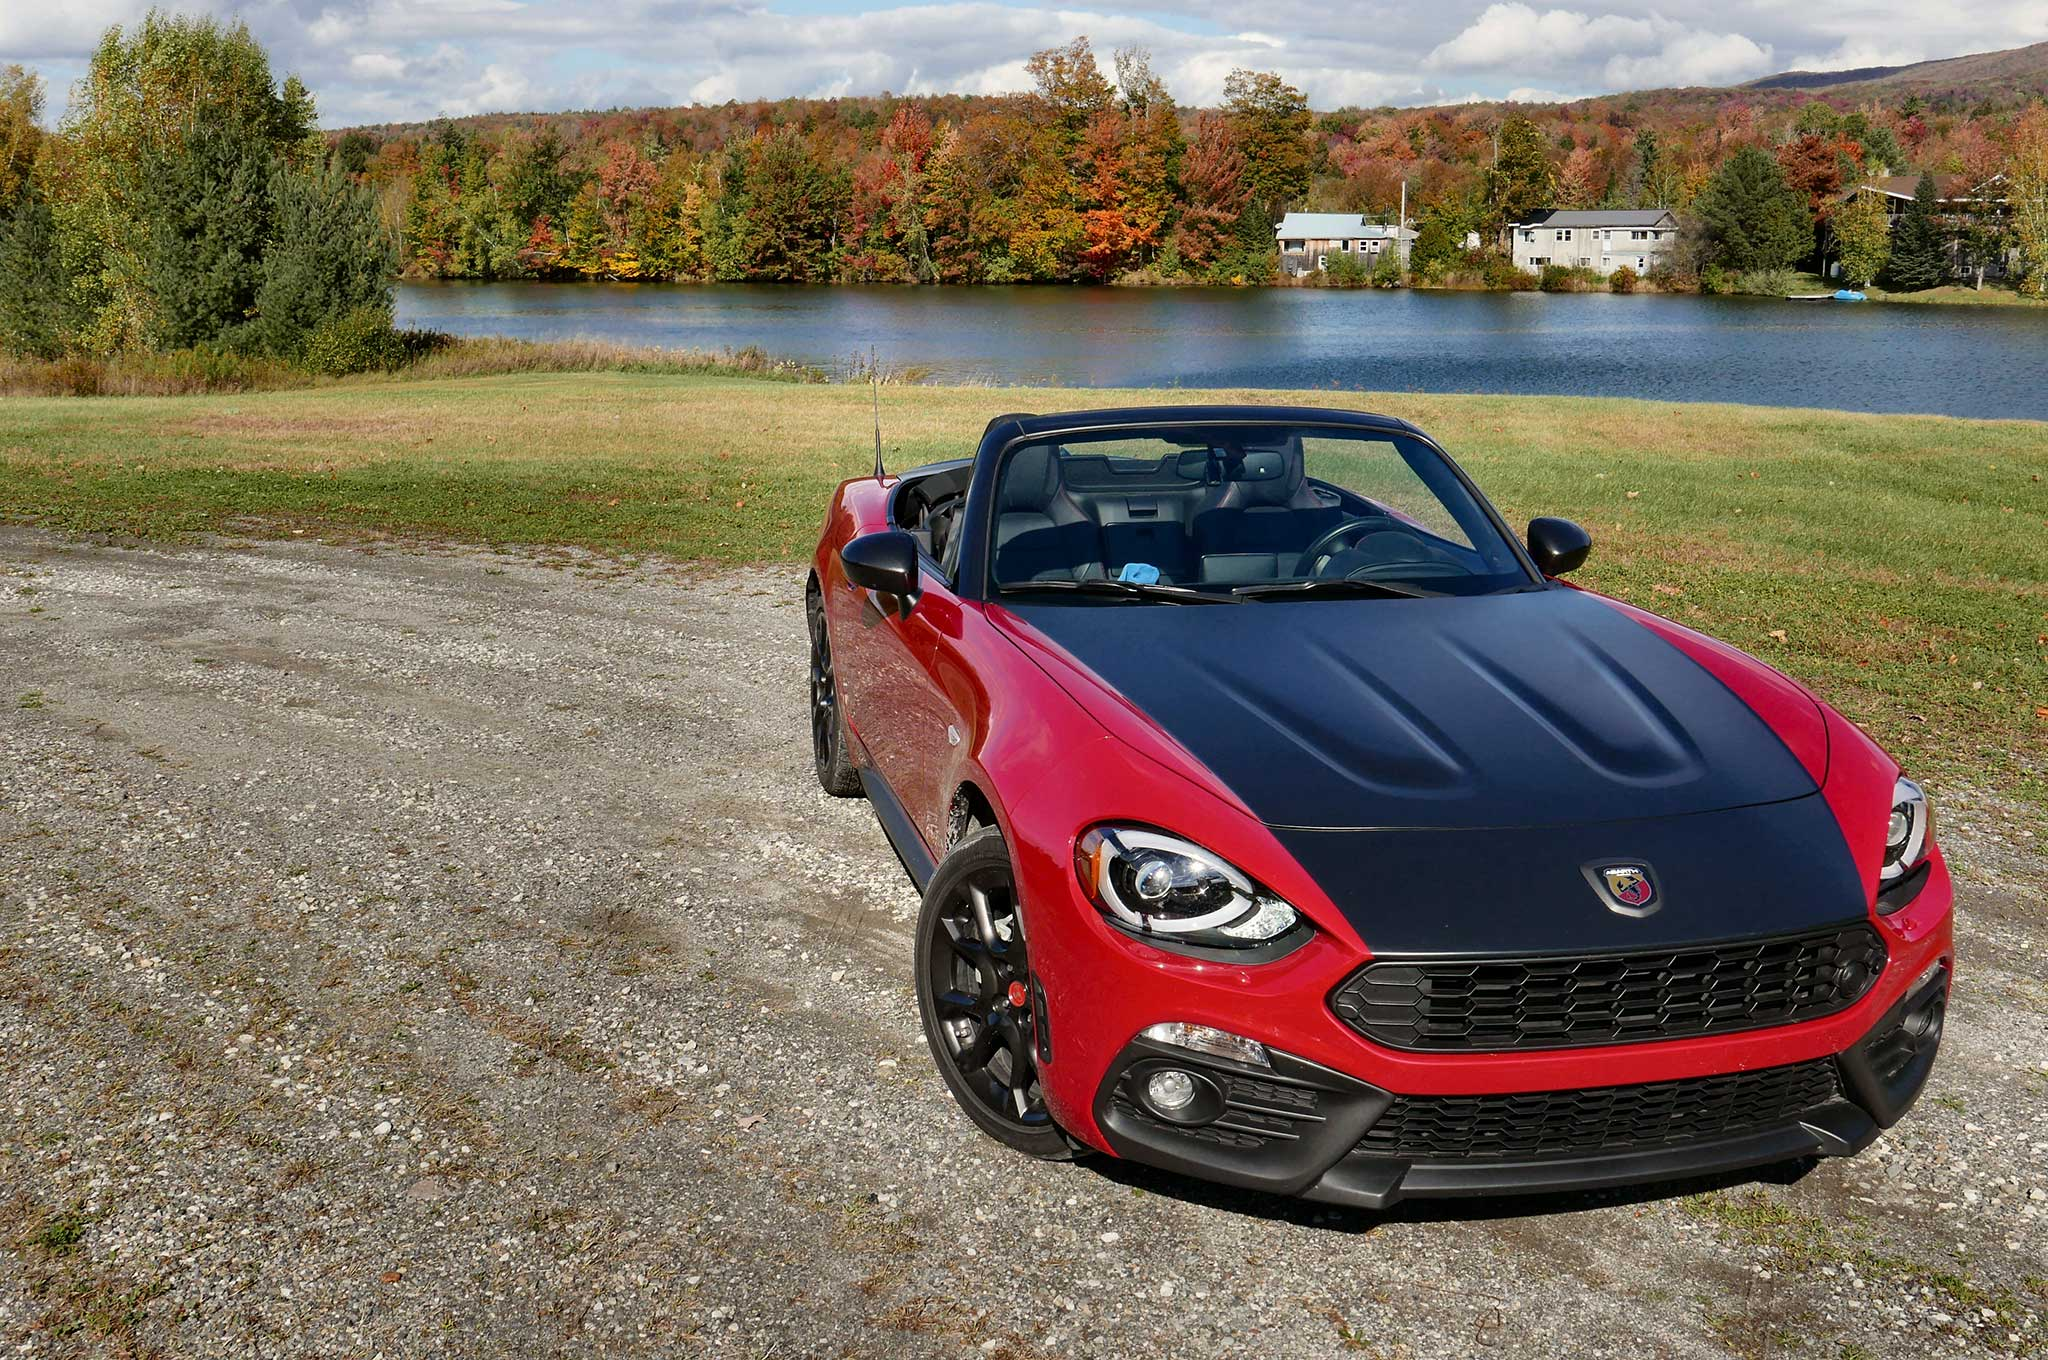 On the Road: 2017 Fiat 124 Spider Abarth